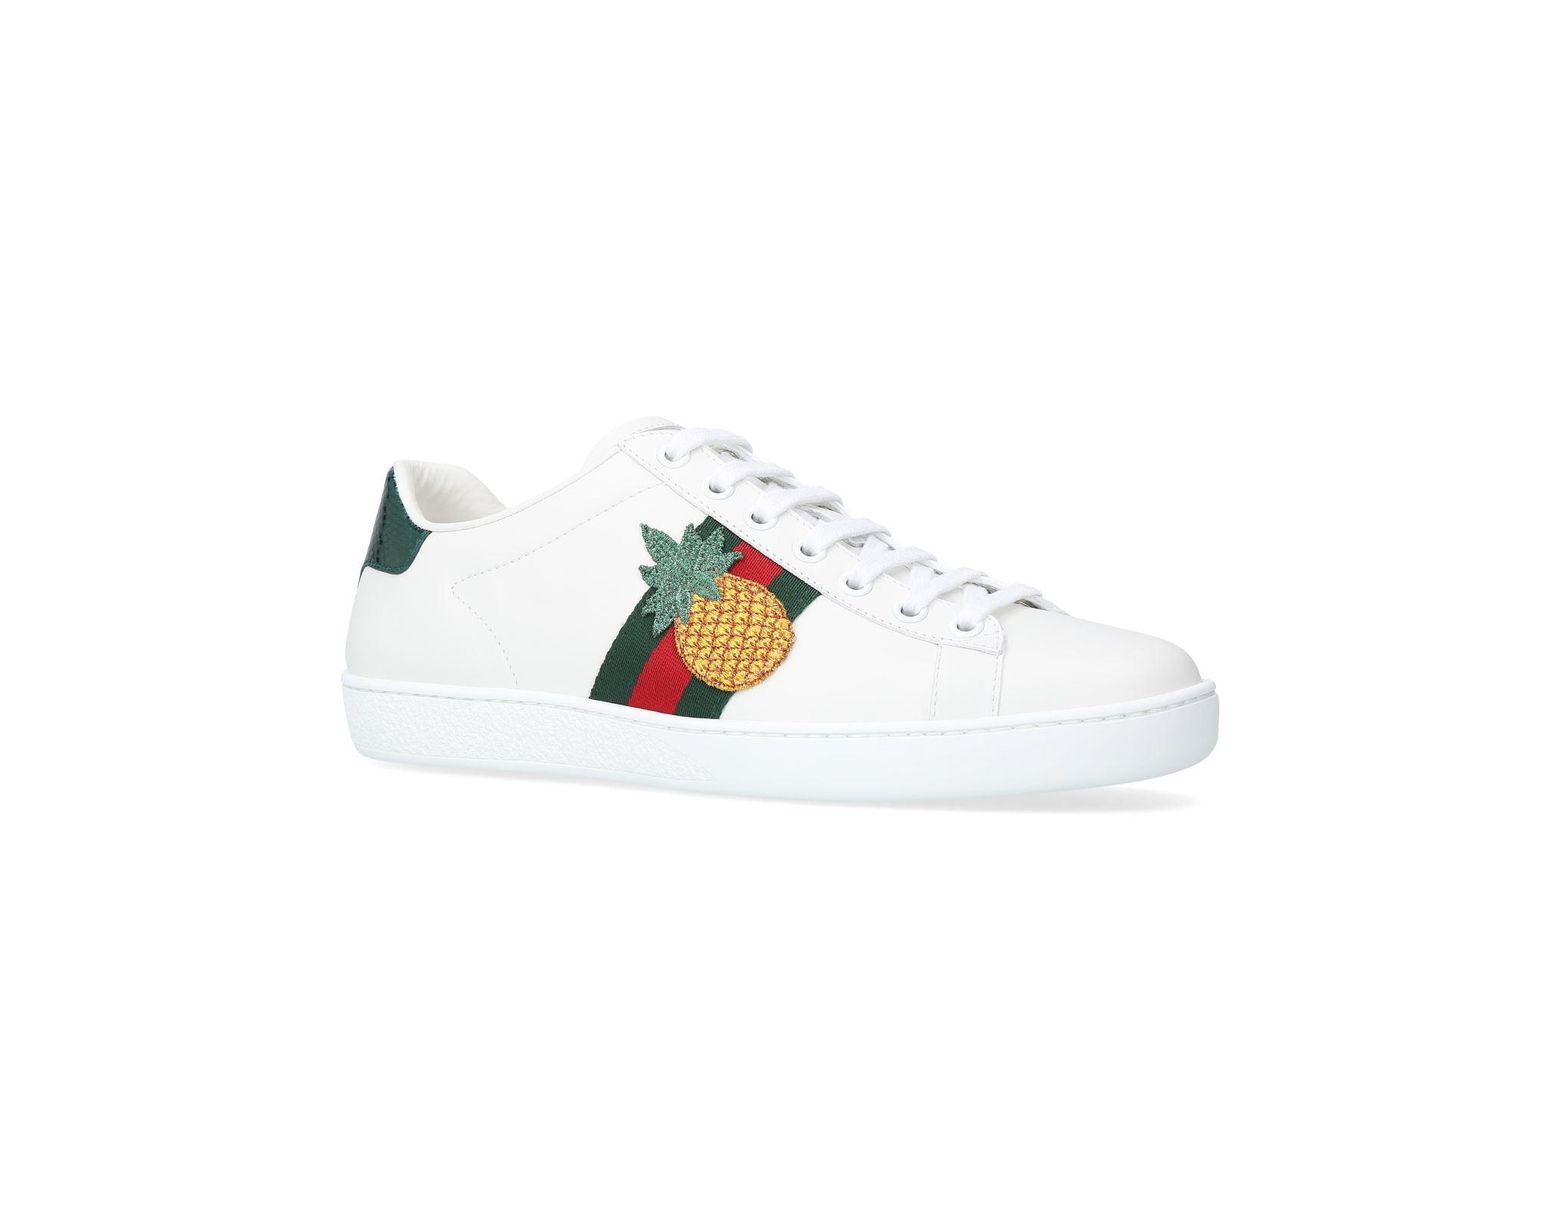 6d68be2d8dd Lyst - Gucci New Ace Pineapple Sneakers in White - Save 7%